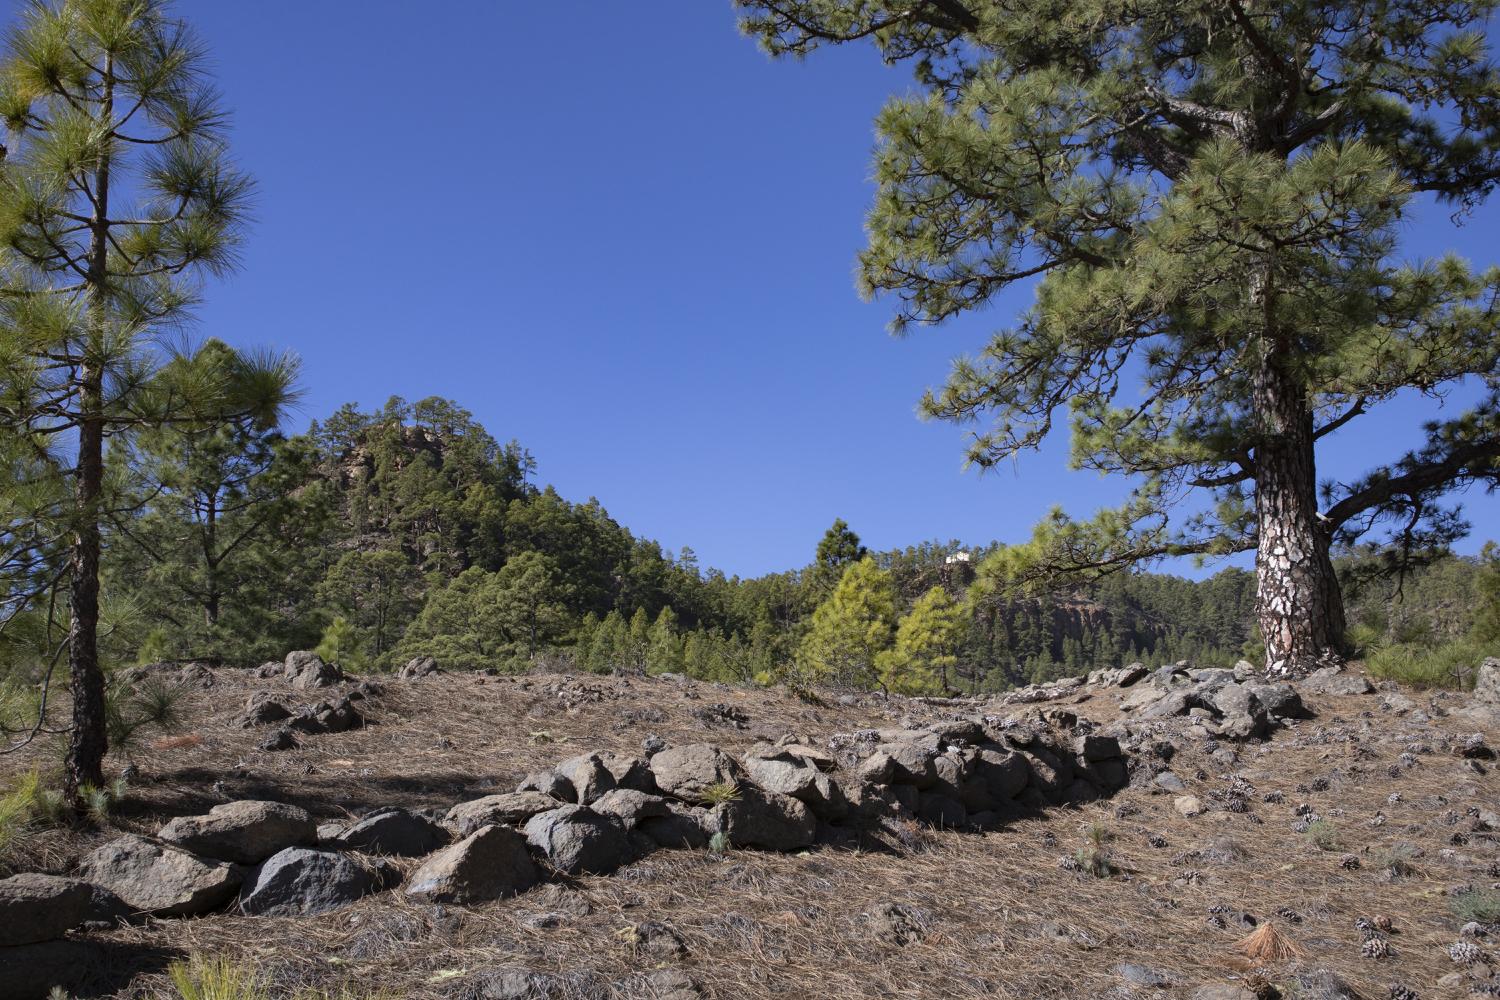 Hiking trail over plateaus and through pine forests